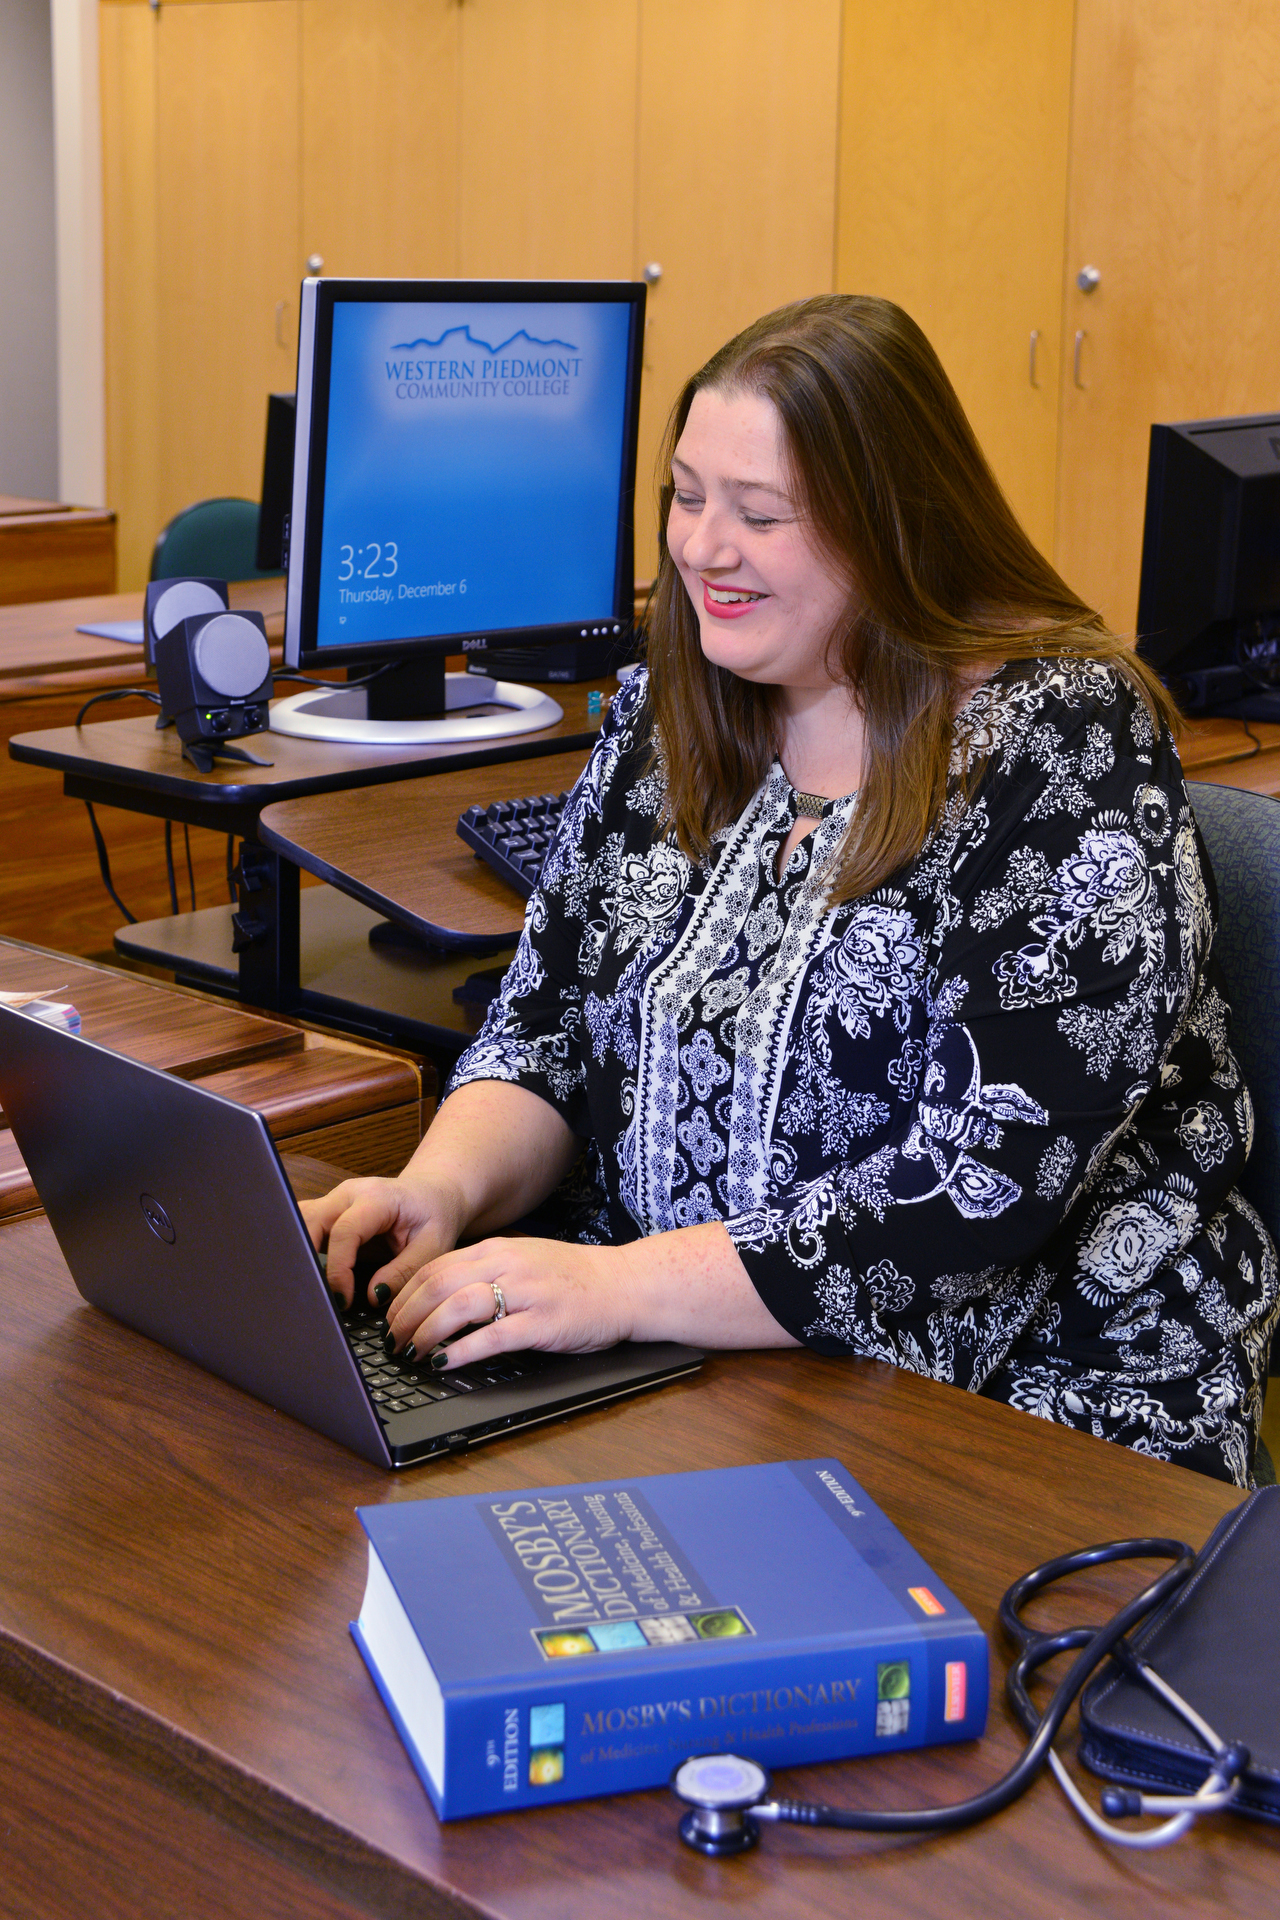 Student working at a computer with medical terms glossary nearby.